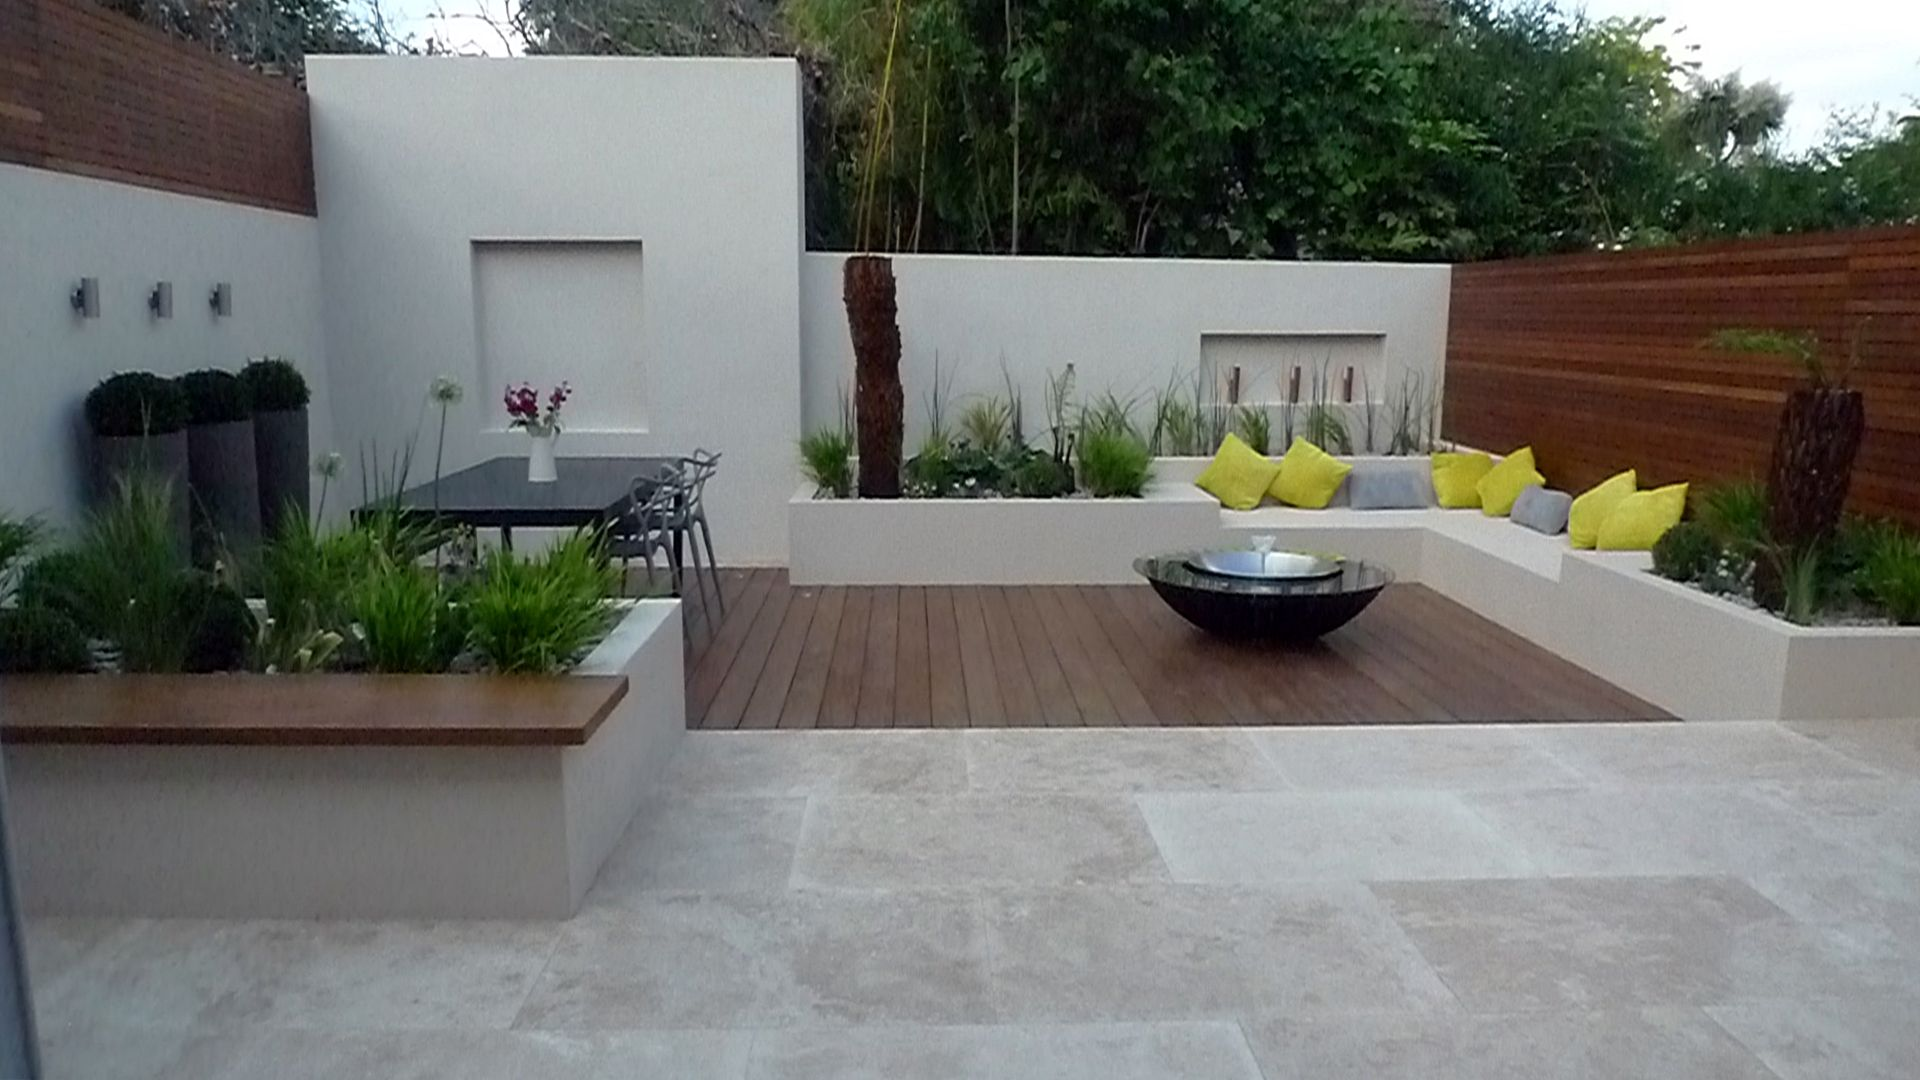 10 Small Modern Garden Design Ideas Awesome And Attractive Back Garden Design Garden Design London Modern Garden Design